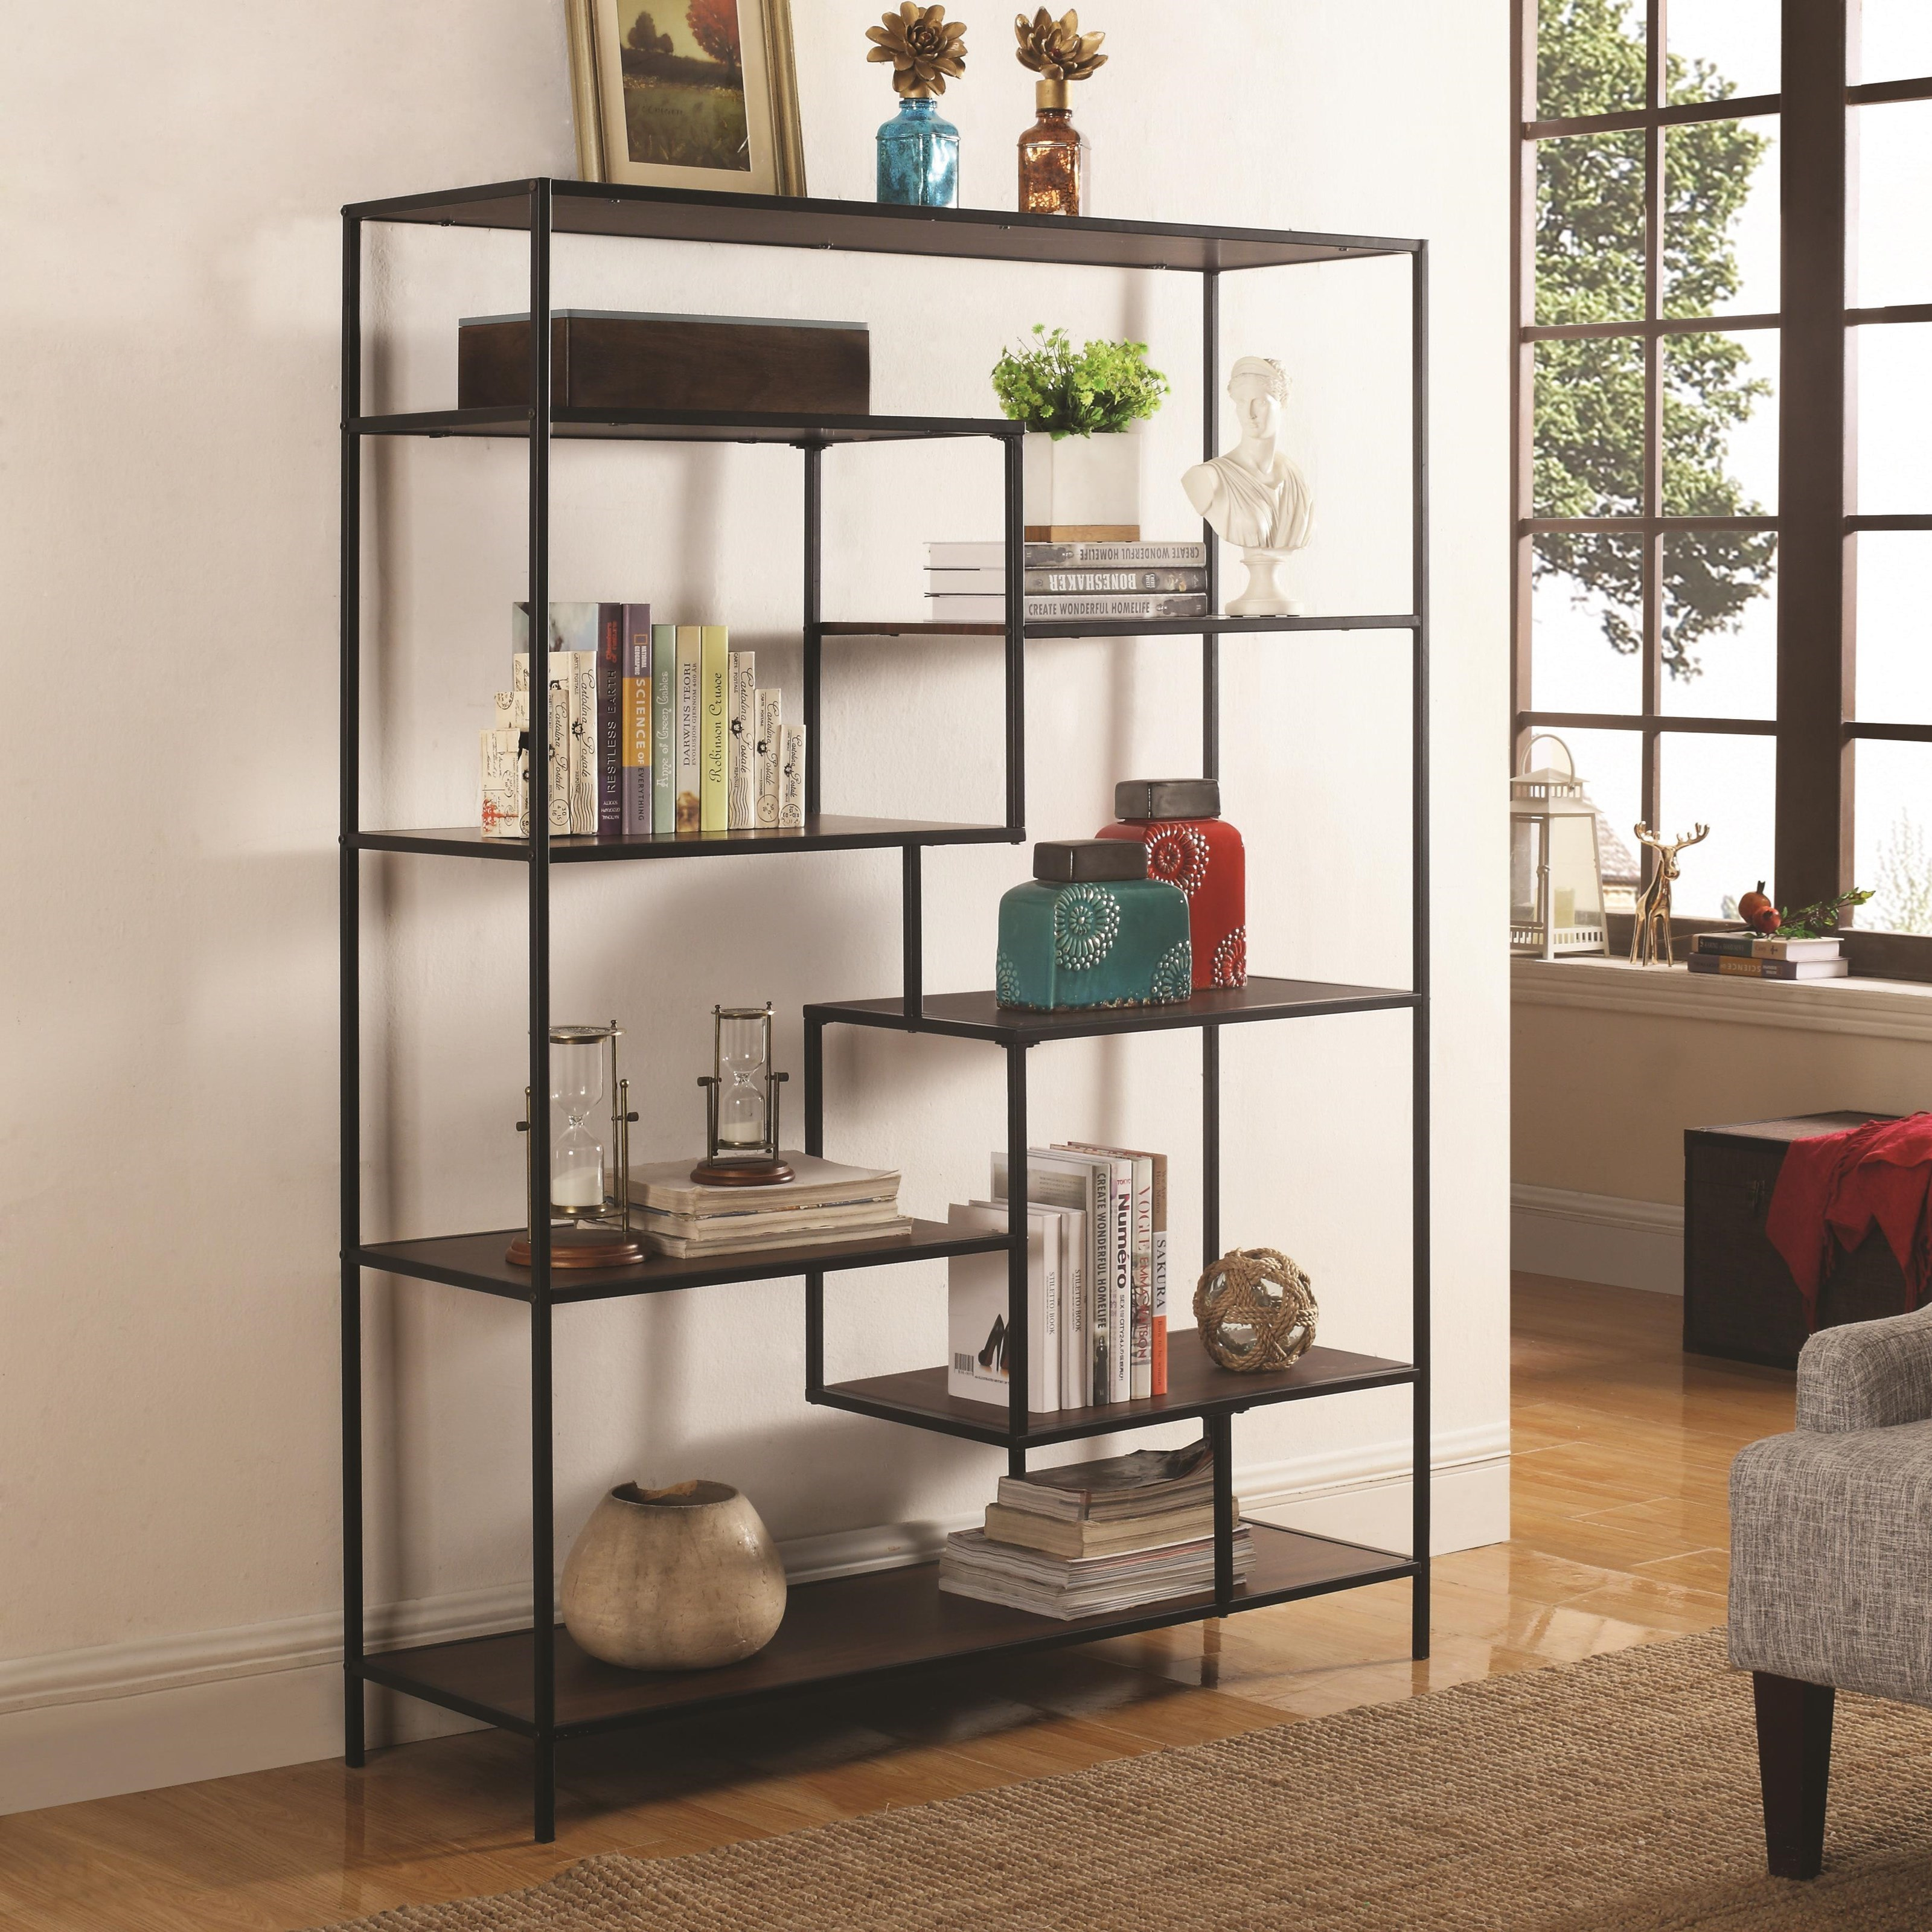 Coaster Bookcases 801135 Modern Bookcase With Offset Shelves   Dunk